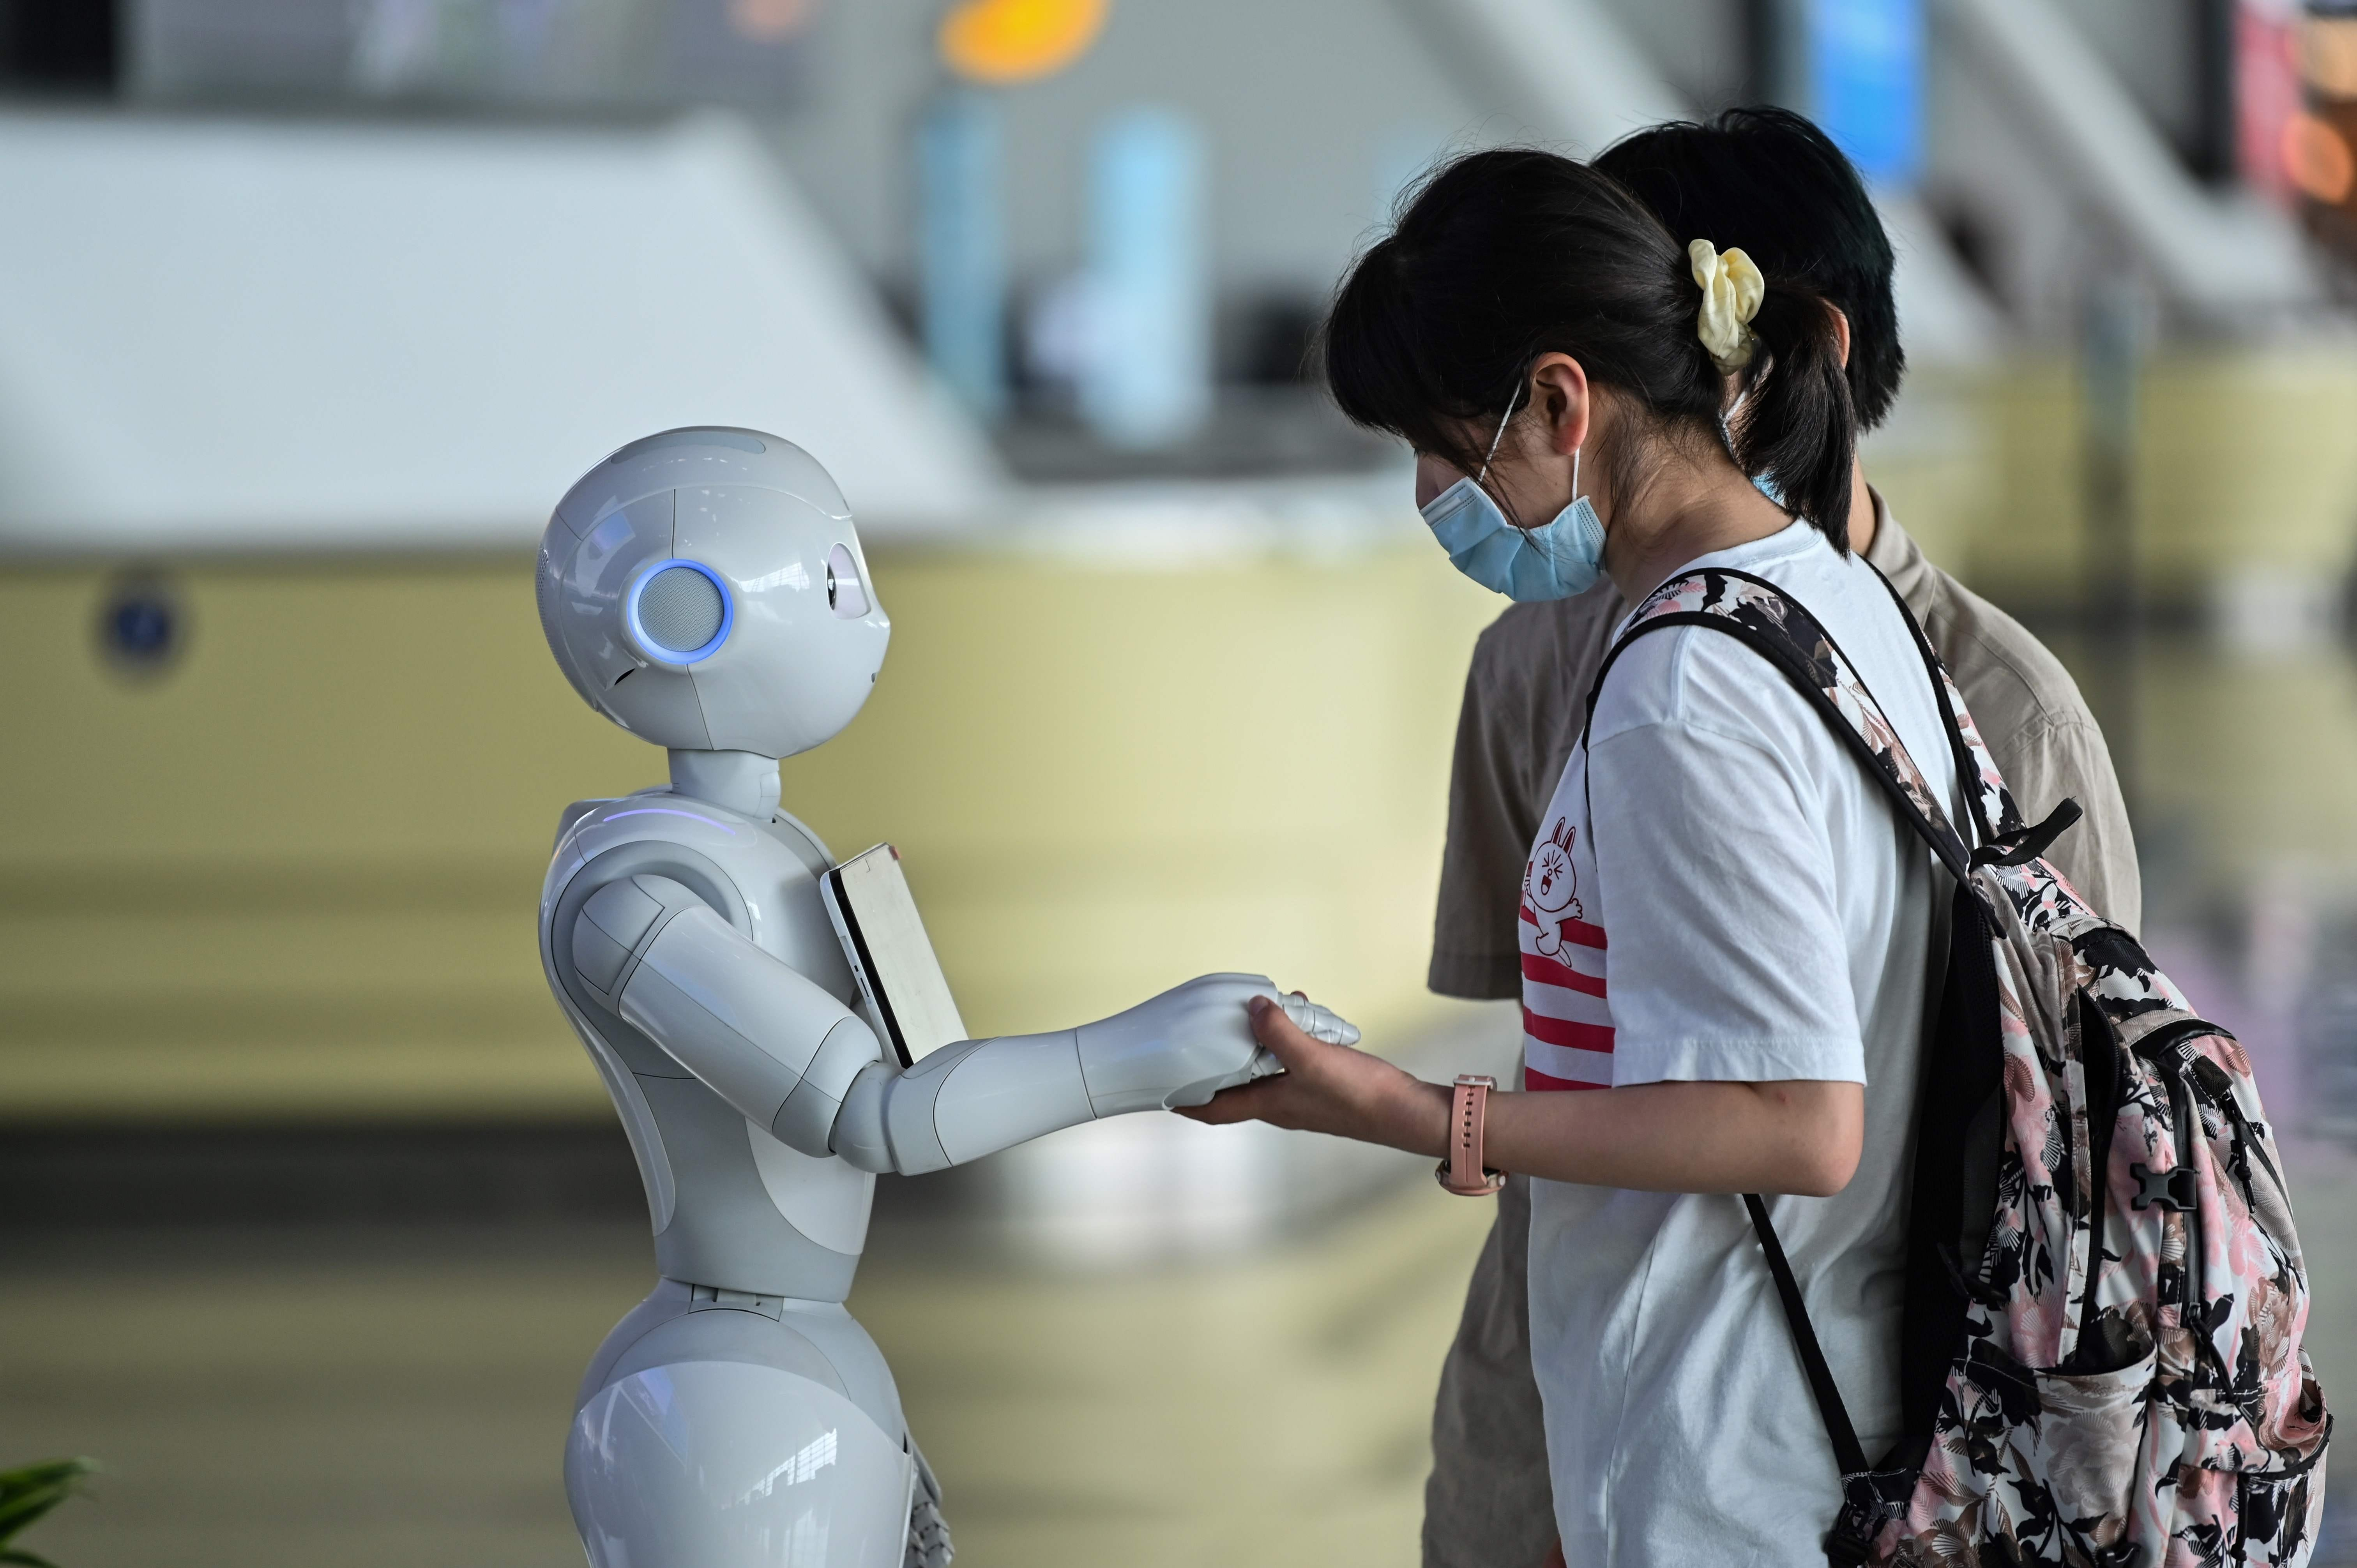 Airports compete for worried flyers with on-site COVID-19 testing, TSA appointments, cleaning robots